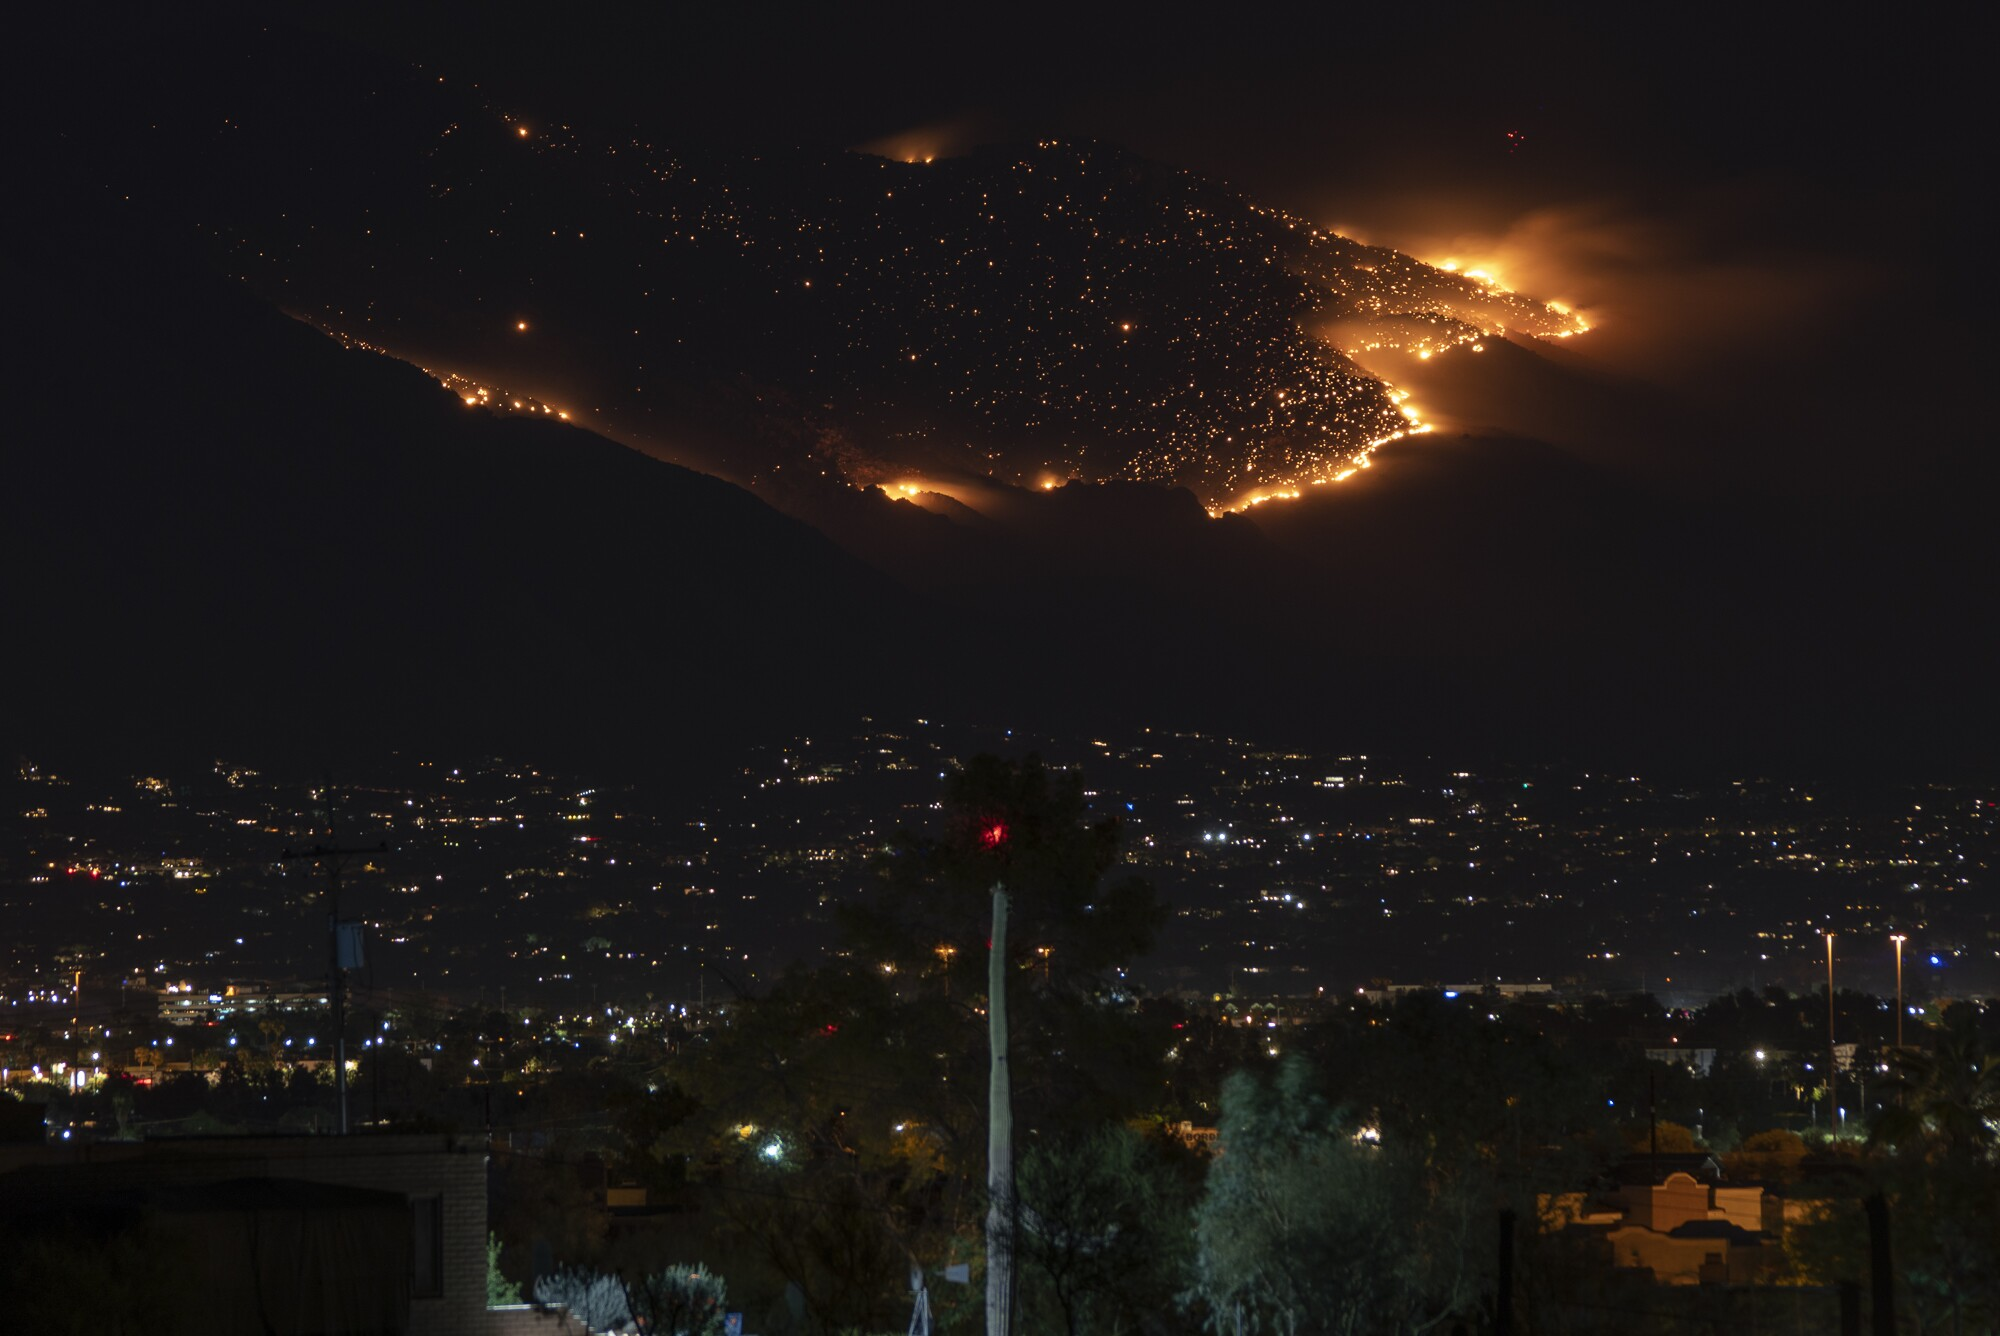 The Bighorn Fire as seen at night with the city of Tucson in the foreground